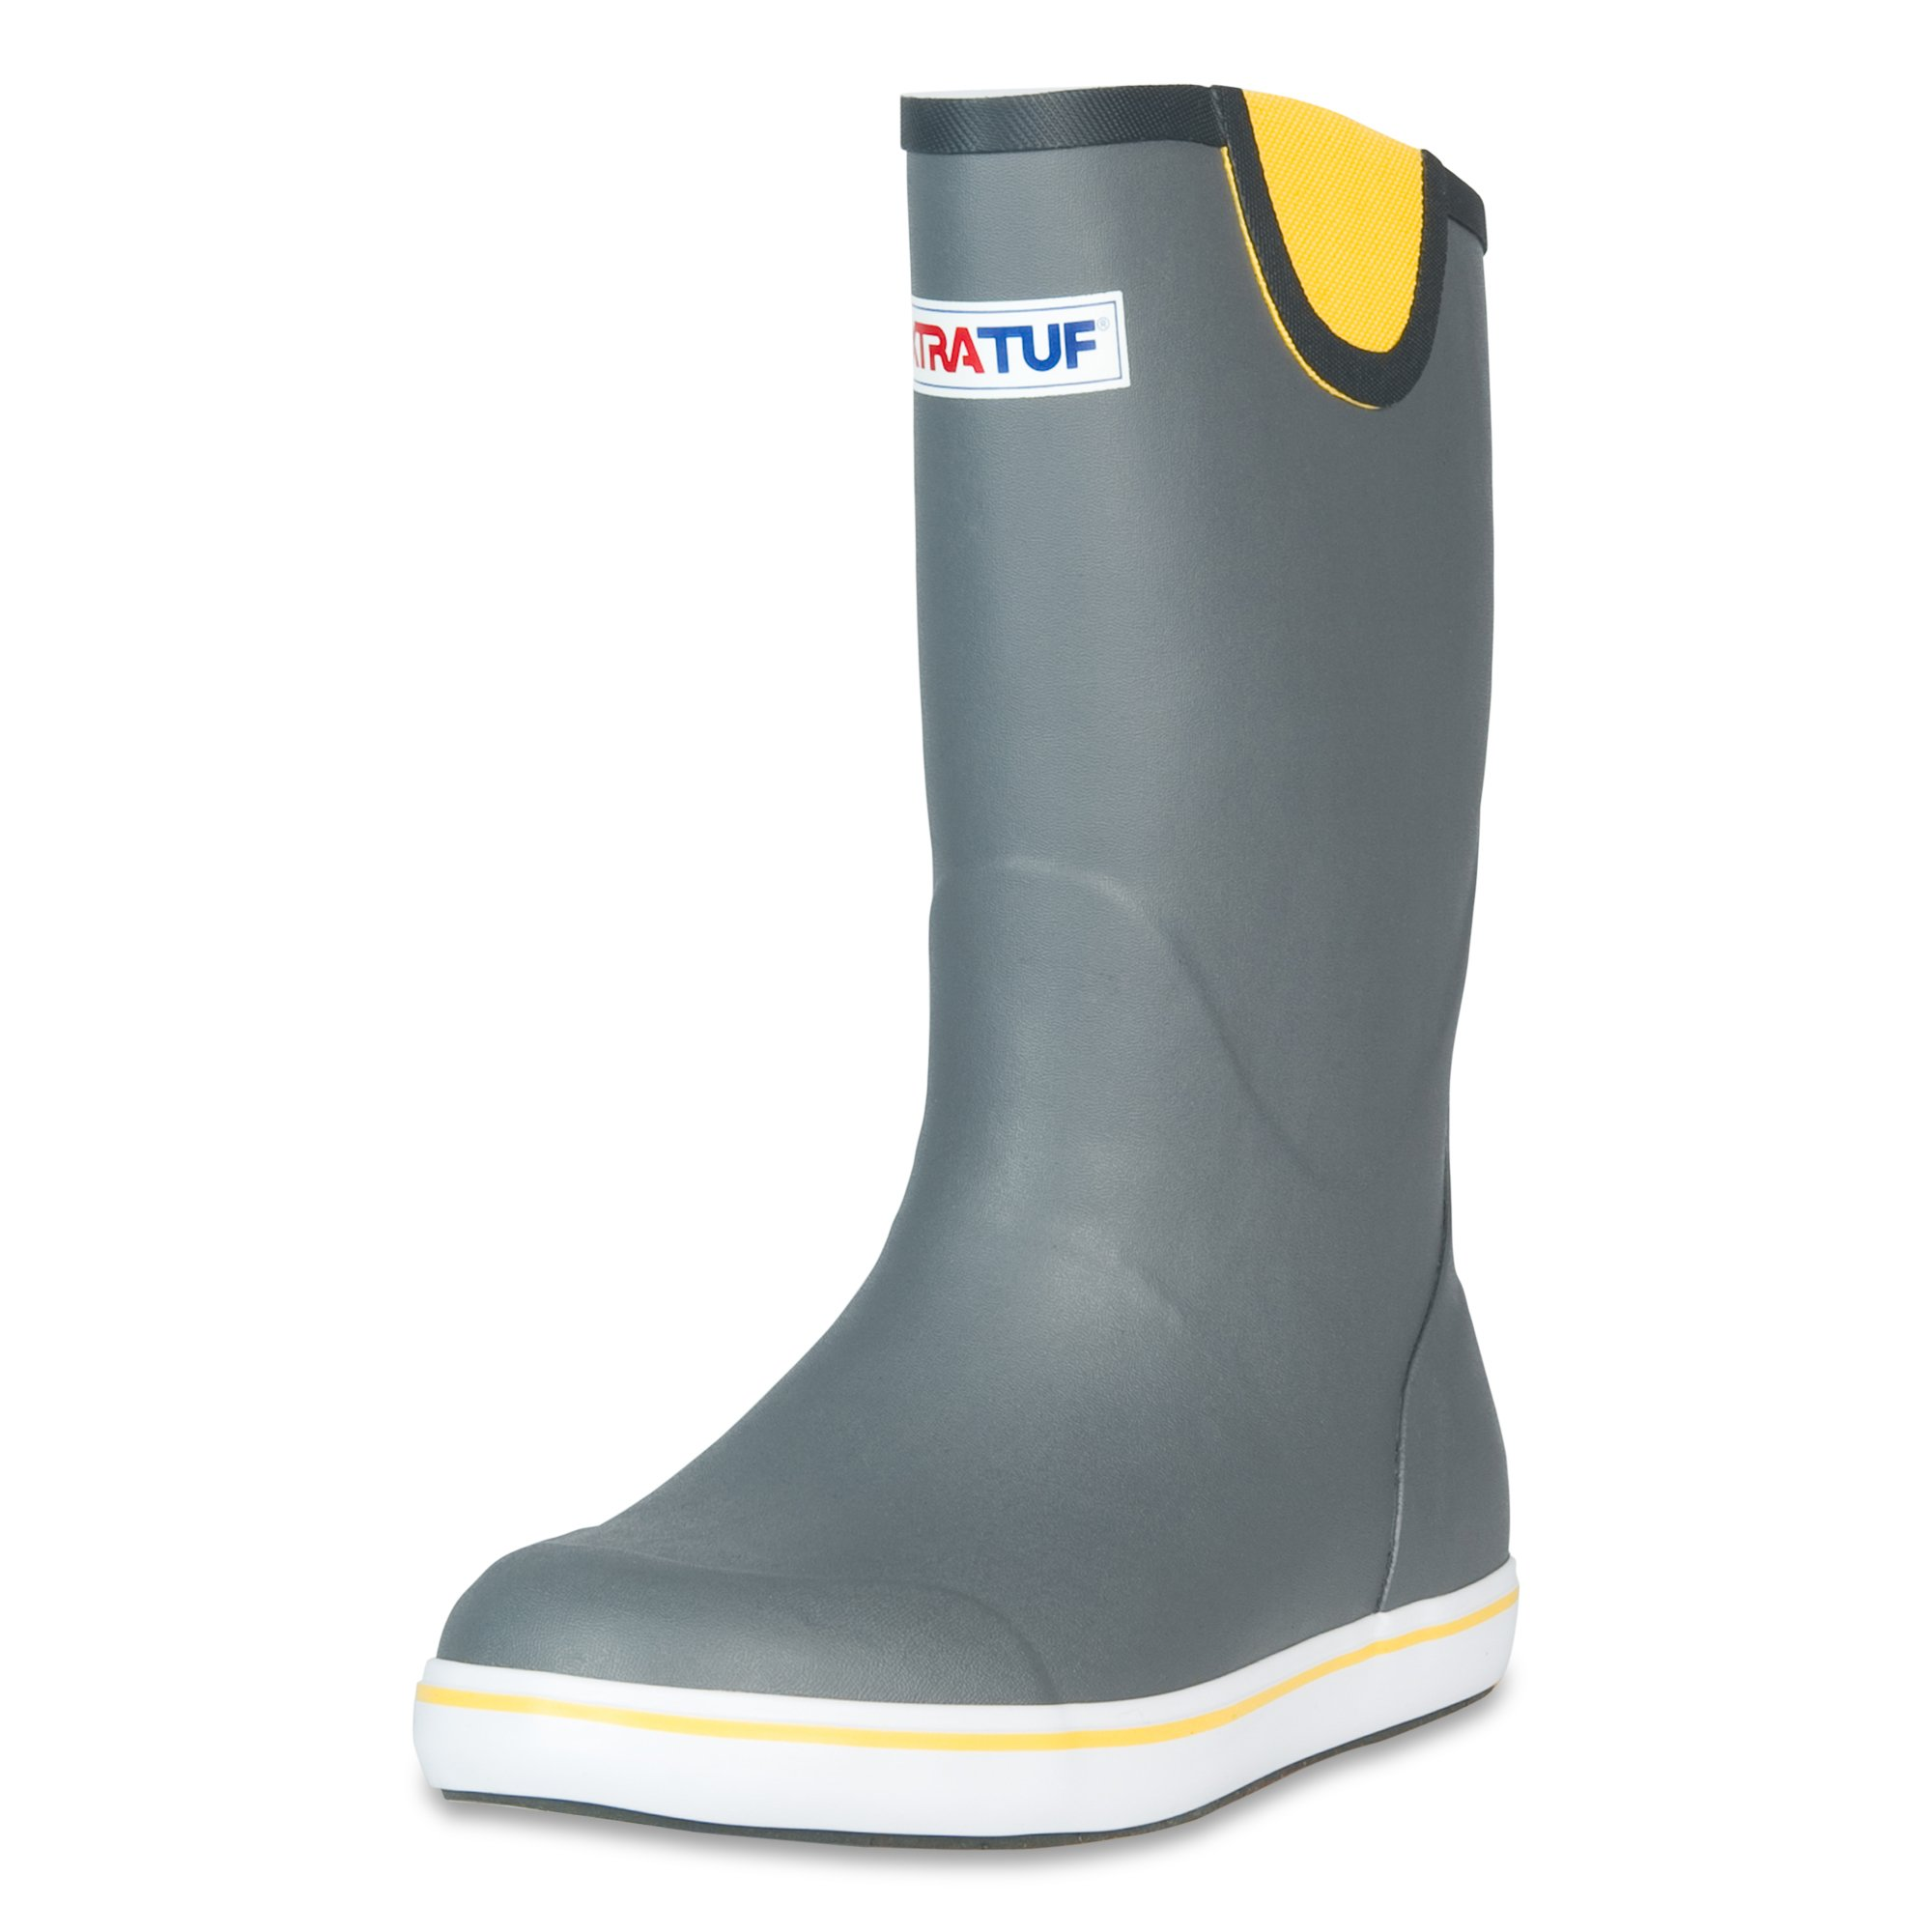 XTRATUF Performance Series 12'' Men's Full Rubber Deck Boots, Gray & Yellow (22712) by Xtratuf (Image #1)